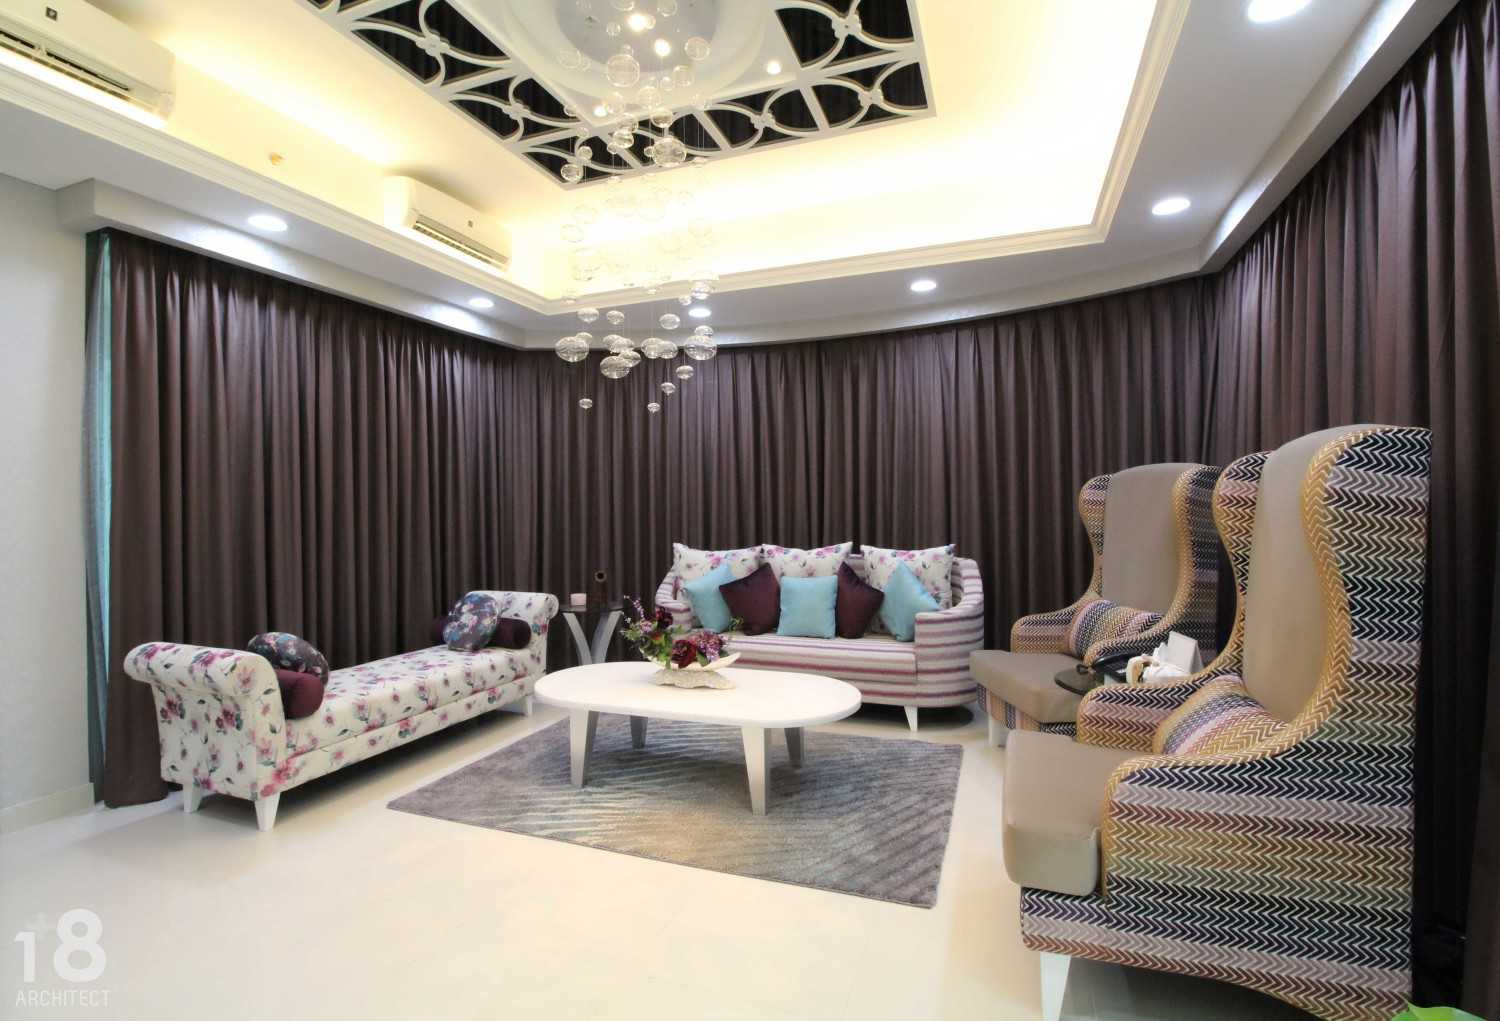 1+8 Architect St. Moritz, Presidential Tower Suite Room Jakarta, Indonesia Jakarta, Indonesia Liviing Room Modern 23008